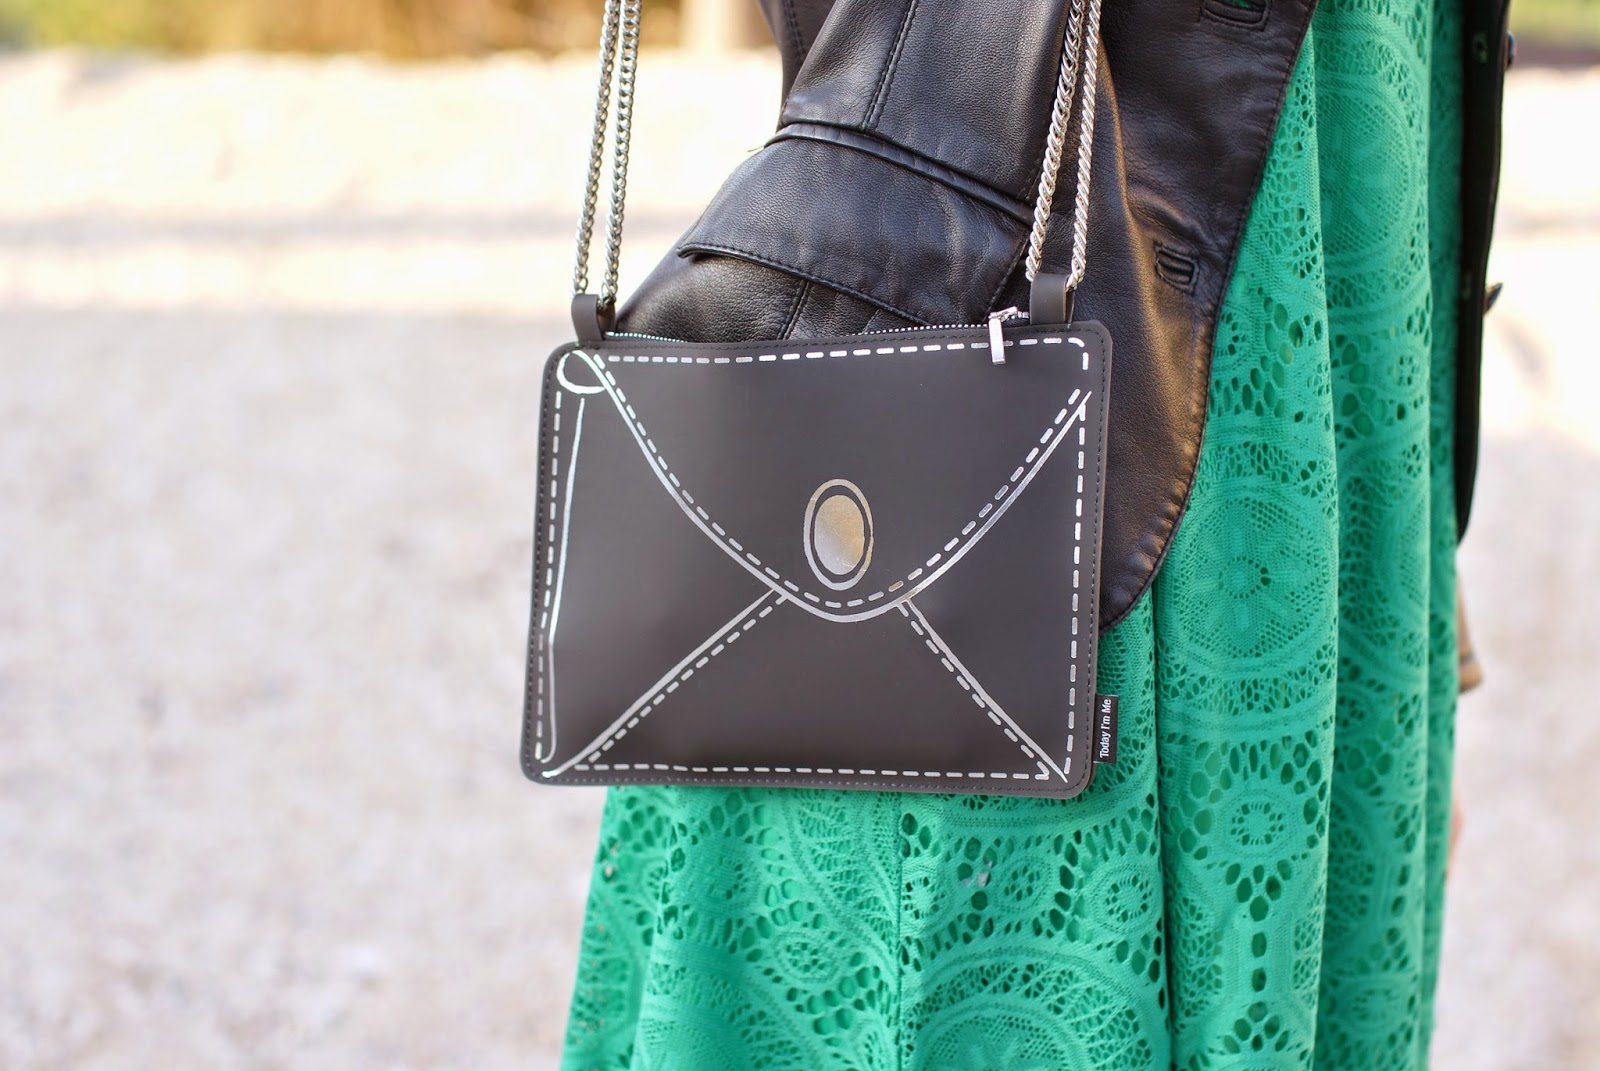 Today I'm me evening bag, Sheinside green dress, Fashion and Cookies, fashion blogger